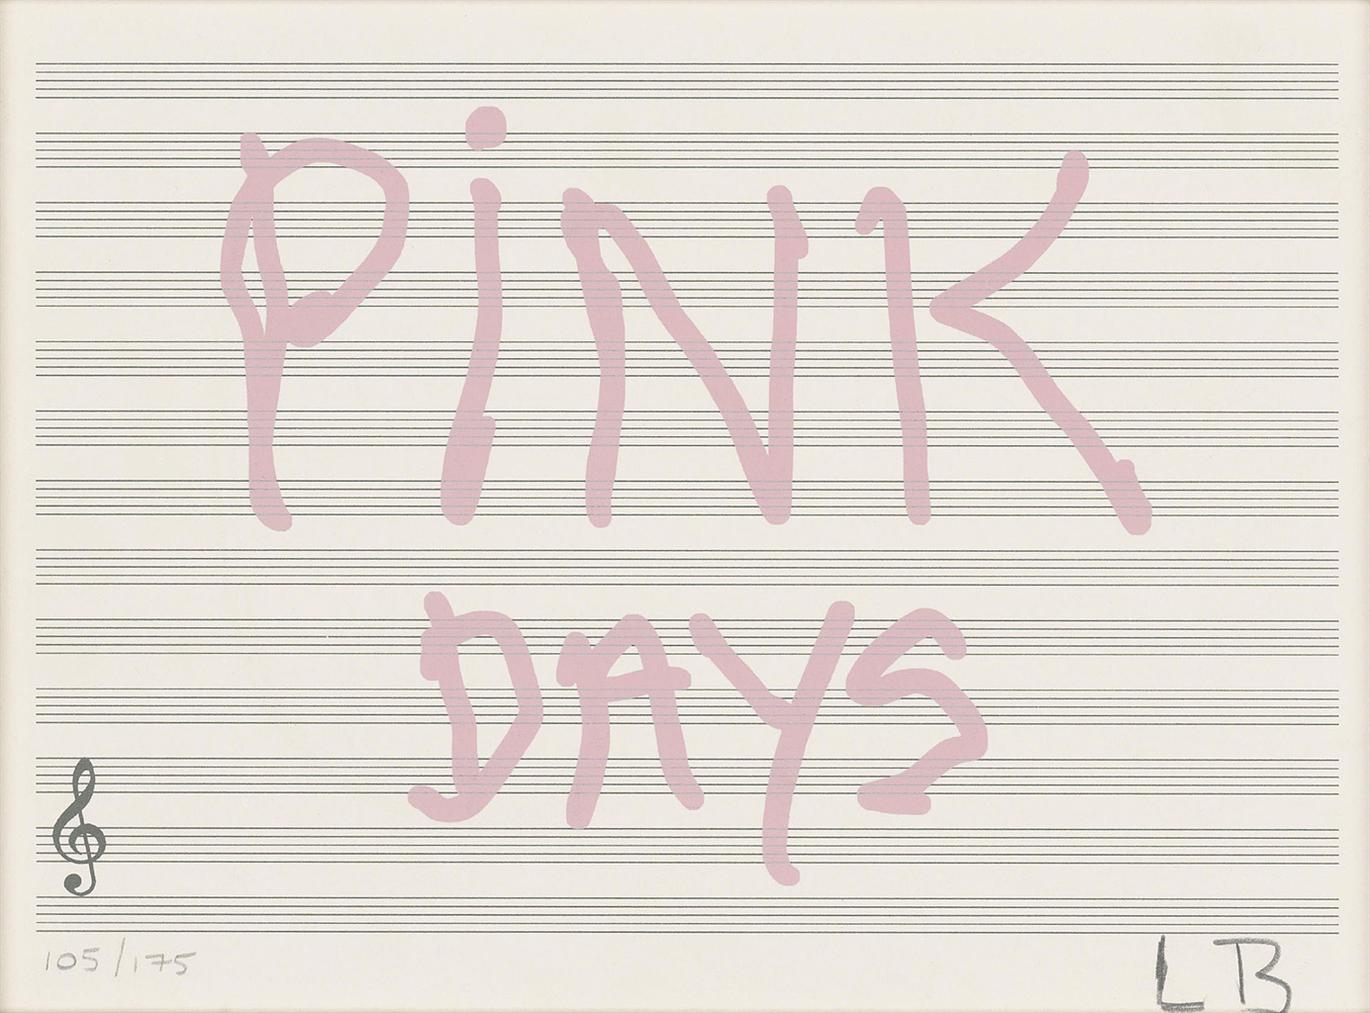 Louise Bourgeois-Untitled (Pink Days)-2008